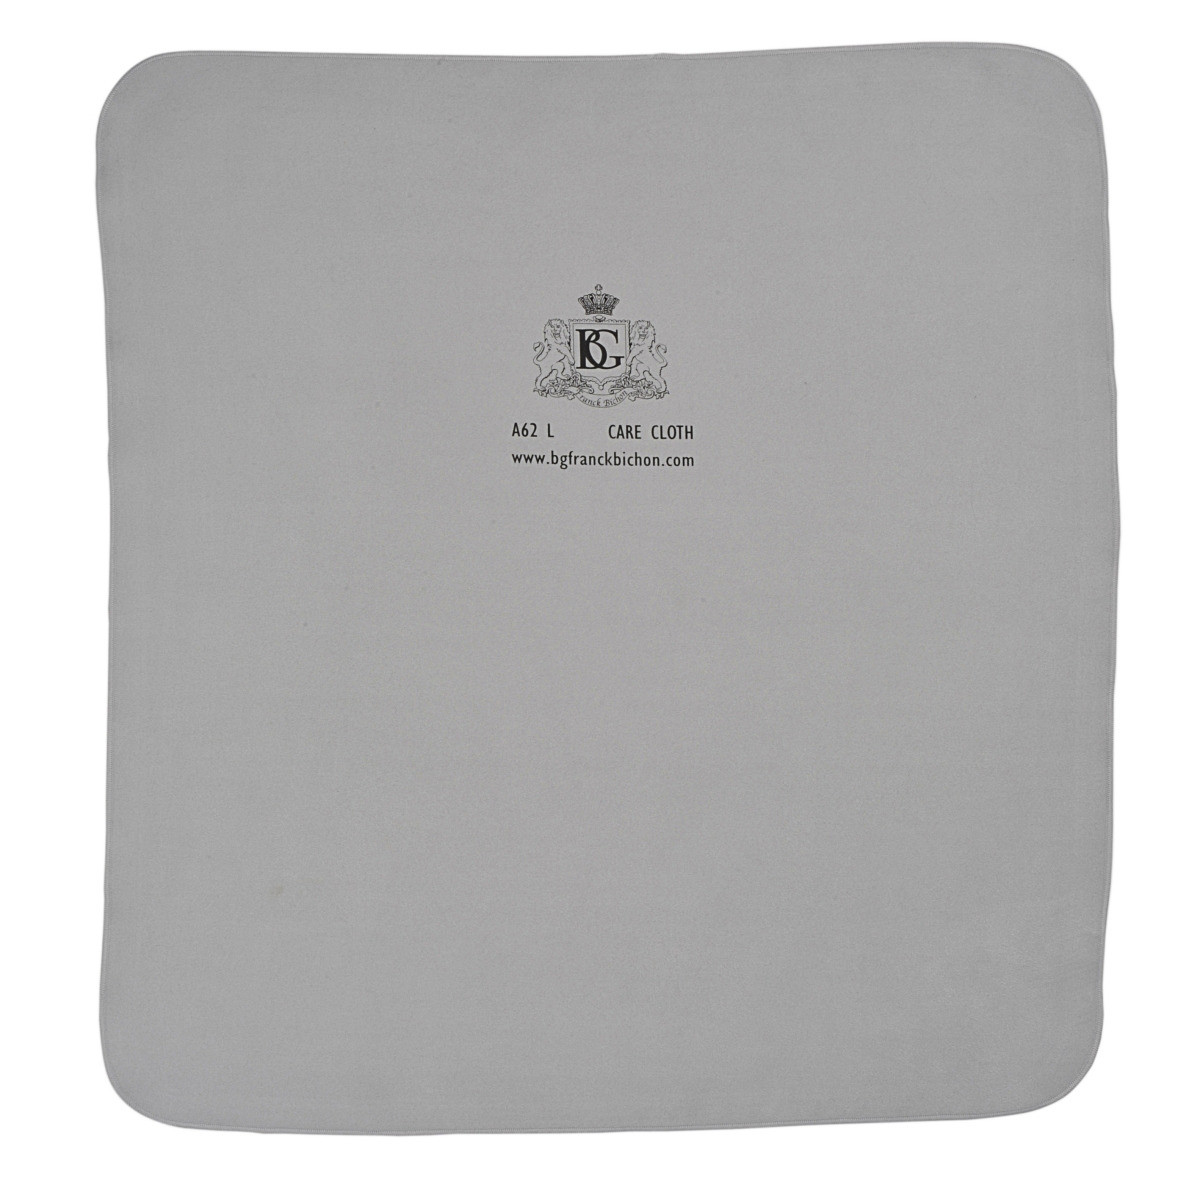 Image of BG Universal Care Cloth Microfibre (Large)